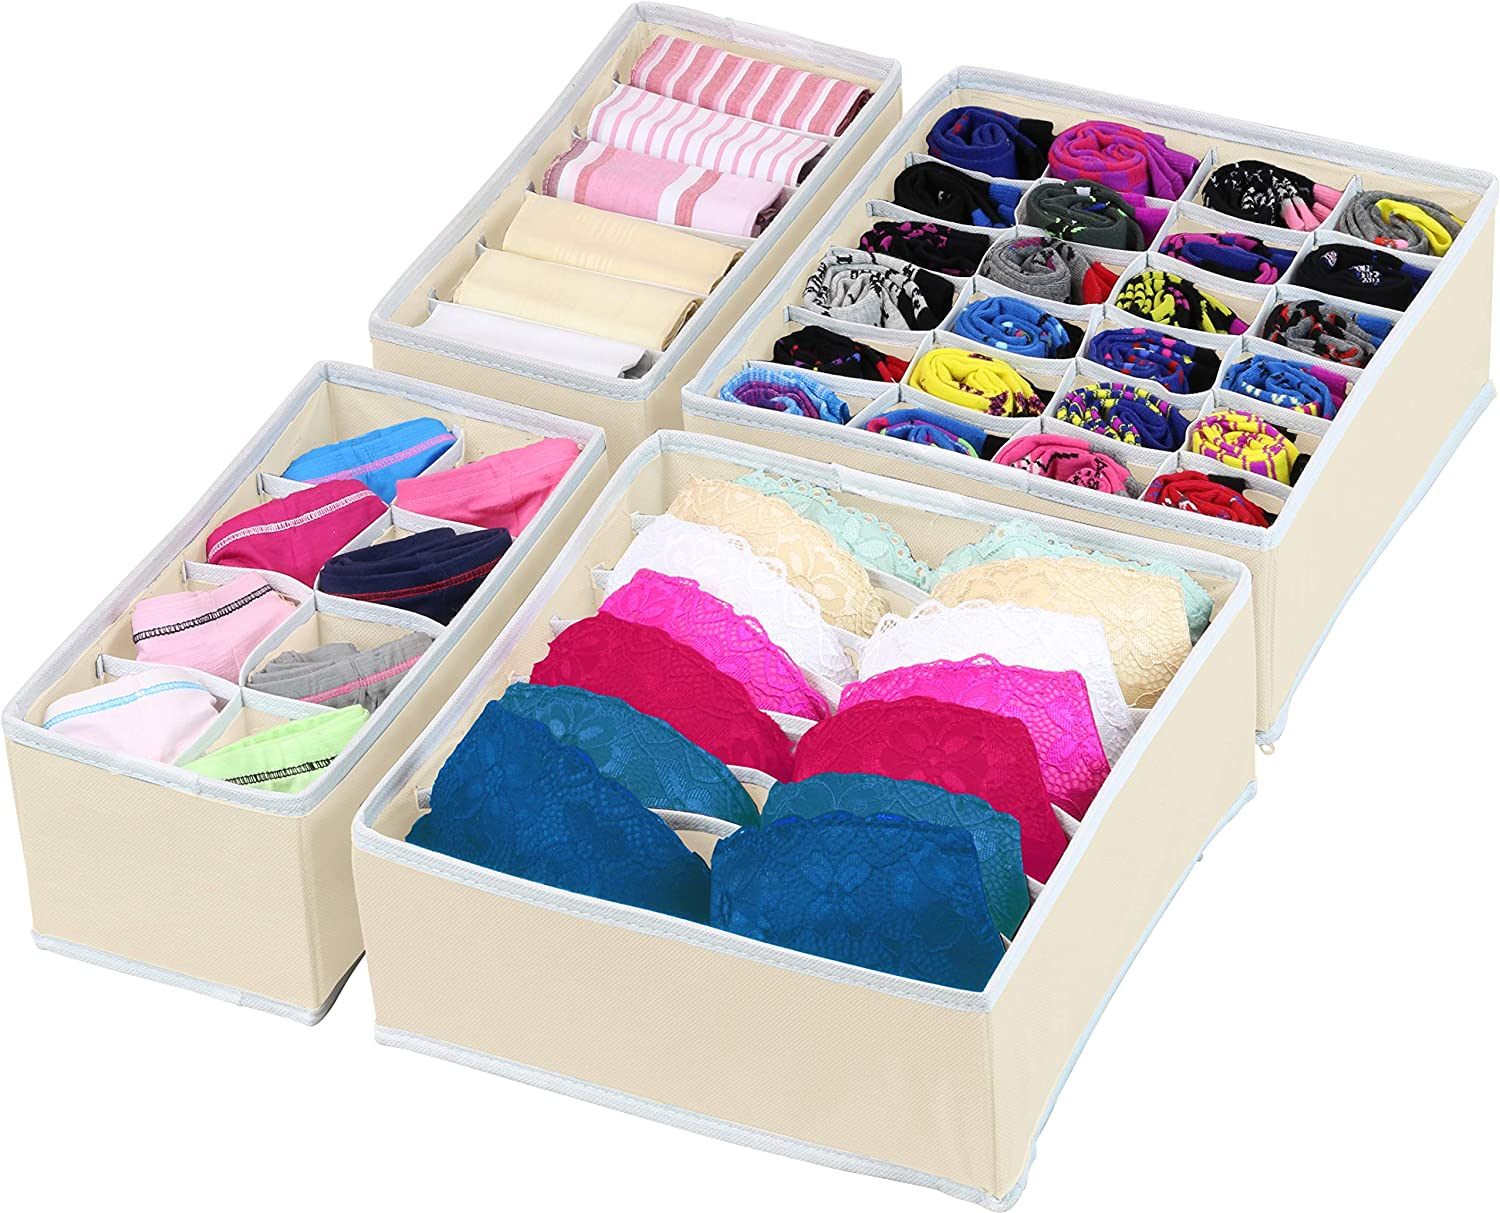 6//7//8//24 Grids Storage Box Closet Underwear Ties Organizer Socks Drawer Divider